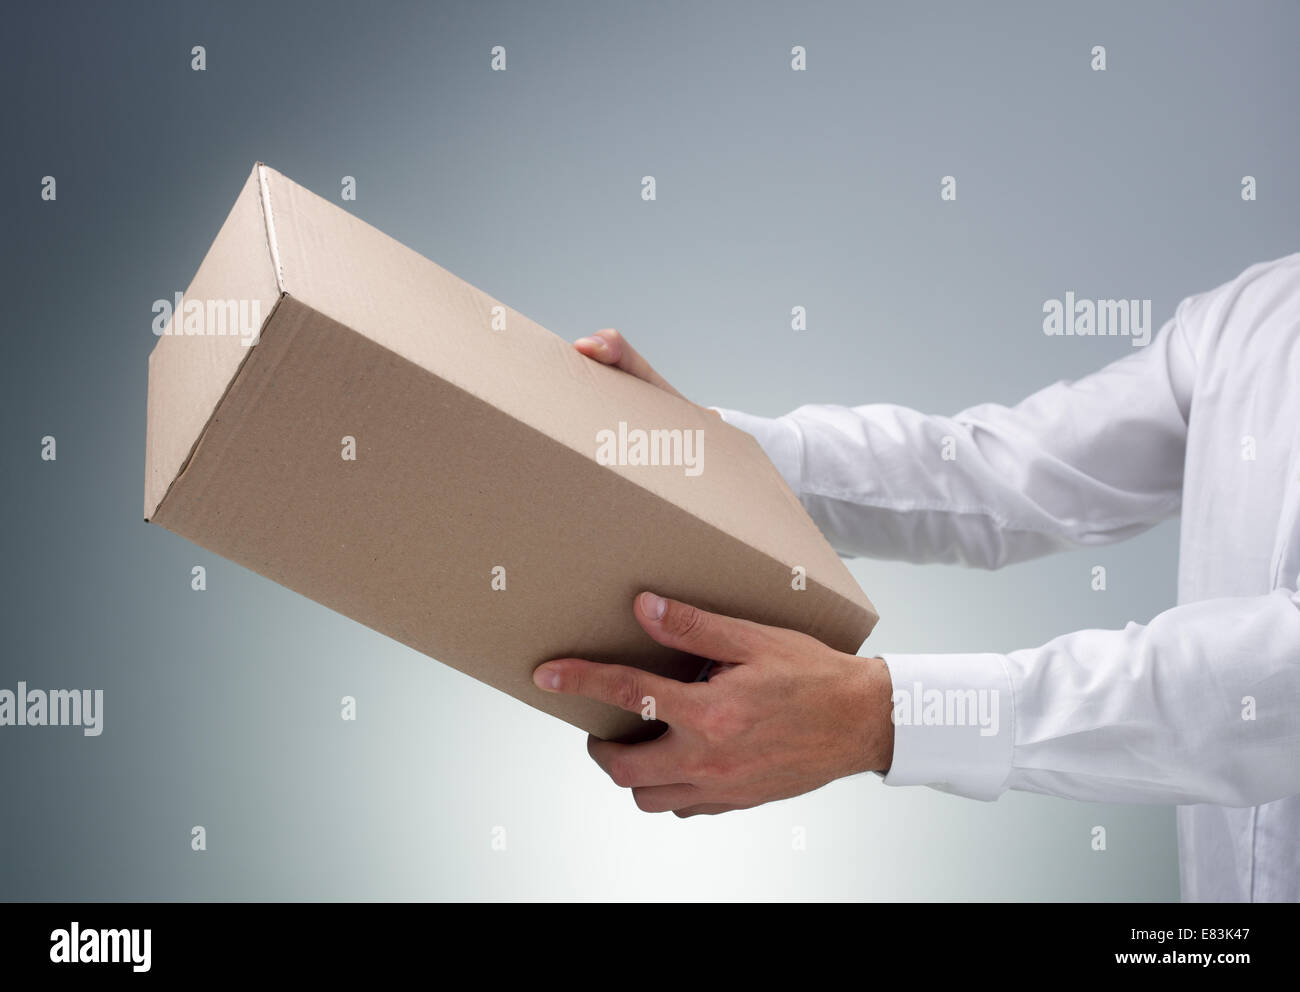 Receiving a package - Stock Image